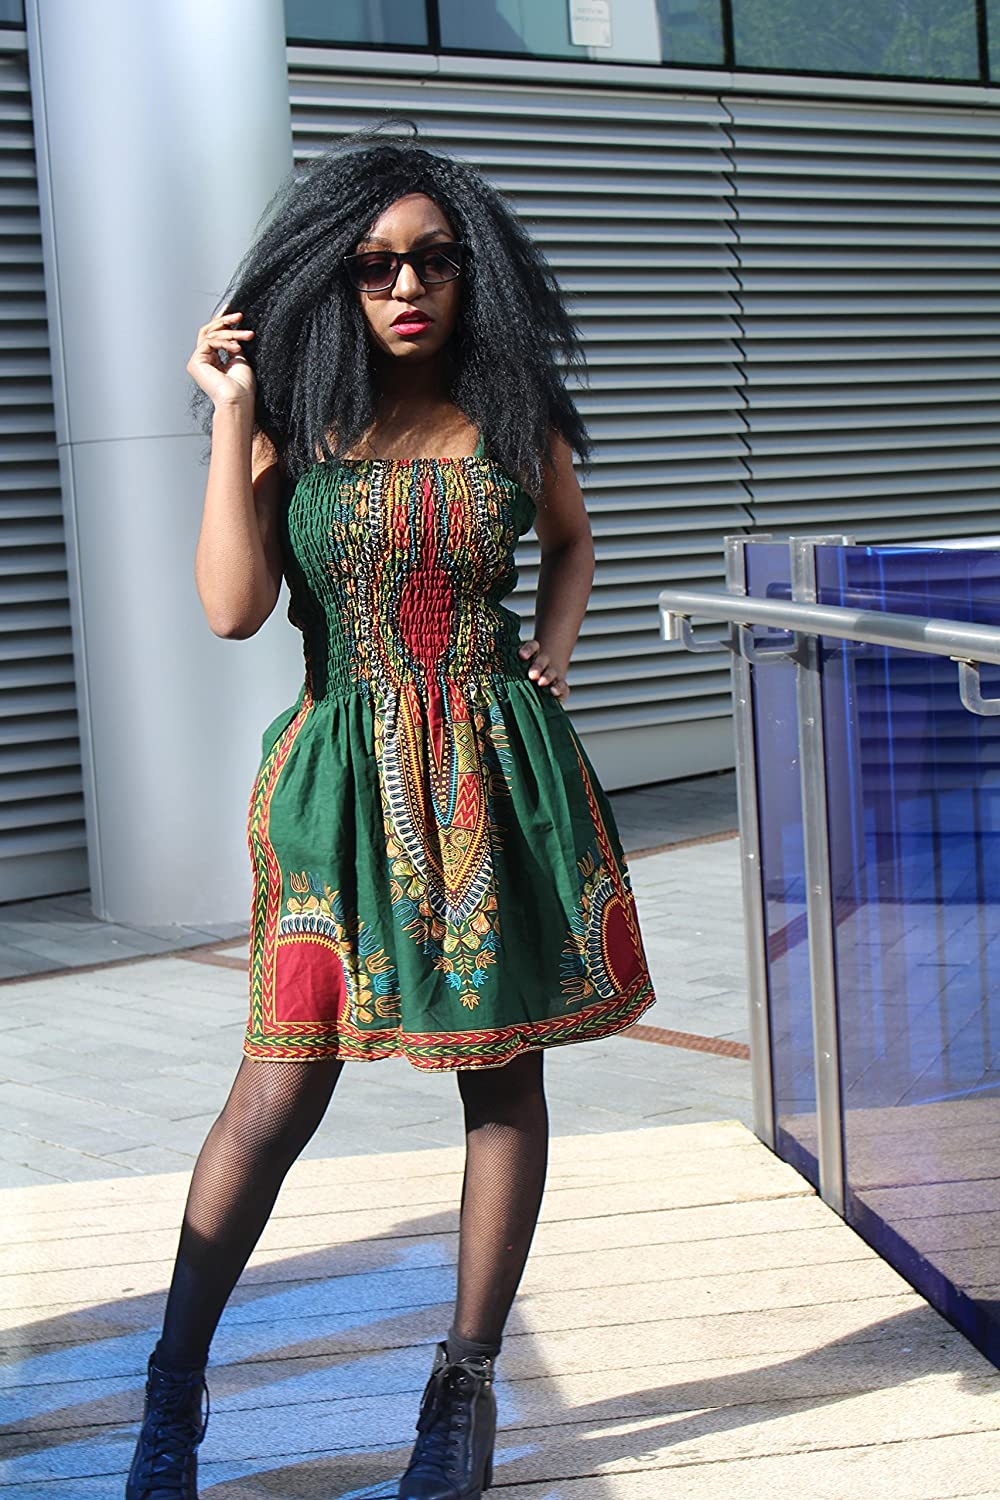 70c11b5e34e Our African Print Elastic Dresses are so beautiful, so simple and so  colourful... You can wear them dressed up, dressed down, and you can just  chick them on ...